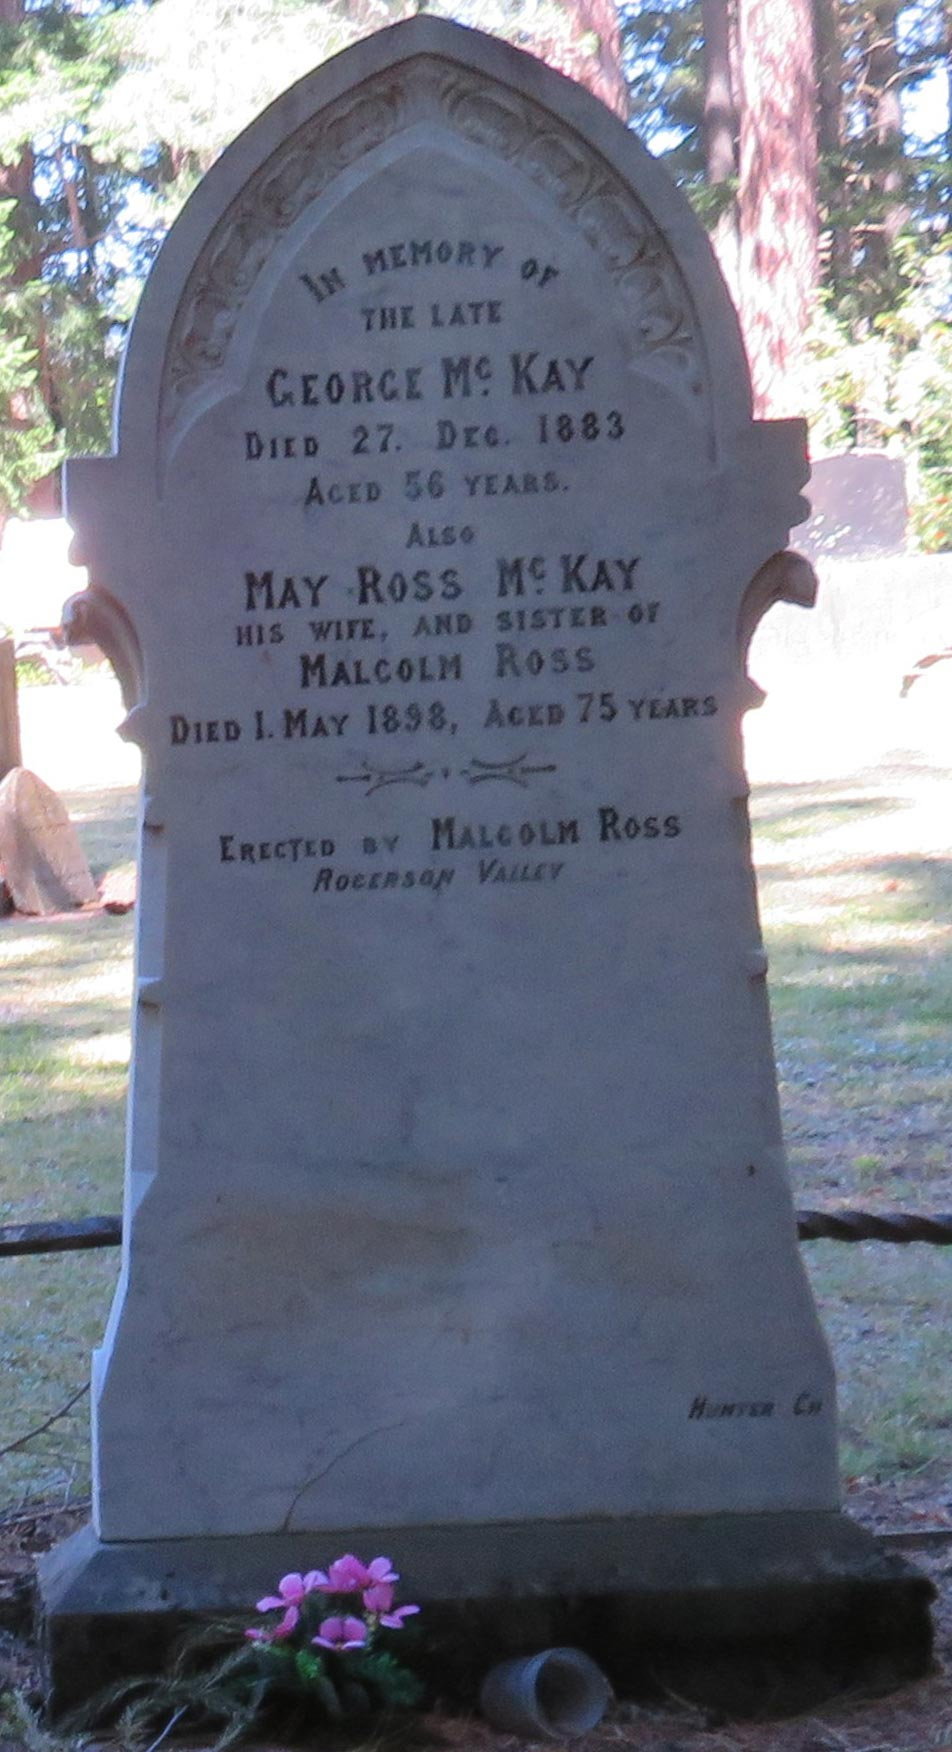 George McKay - May Ross grave